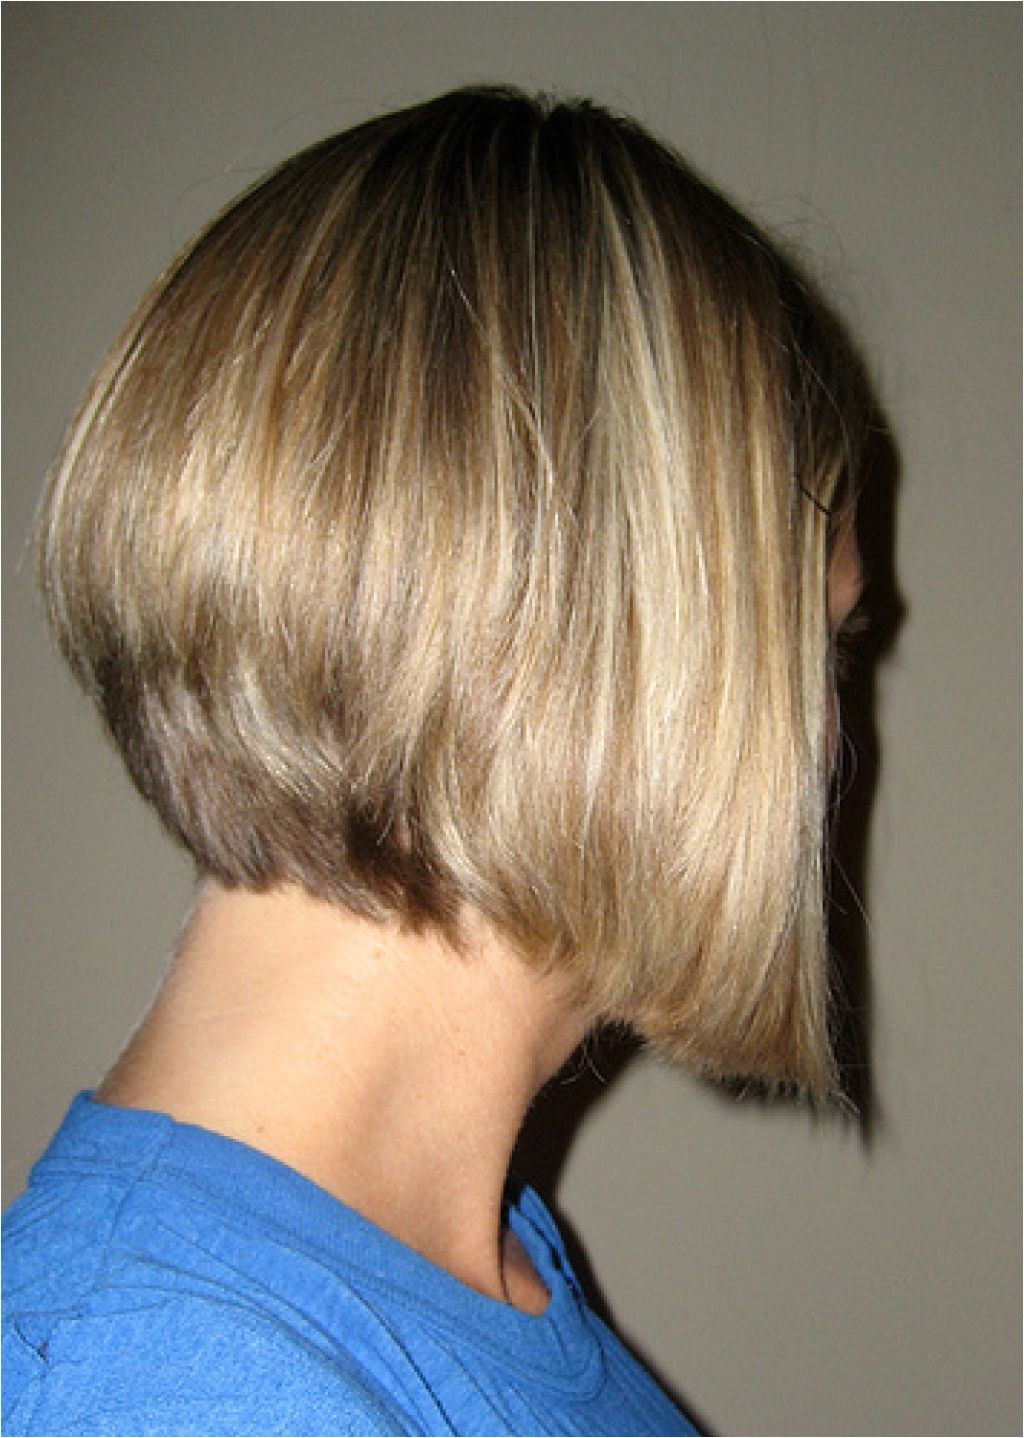 collectioncdwn chelsea kane haircut back view